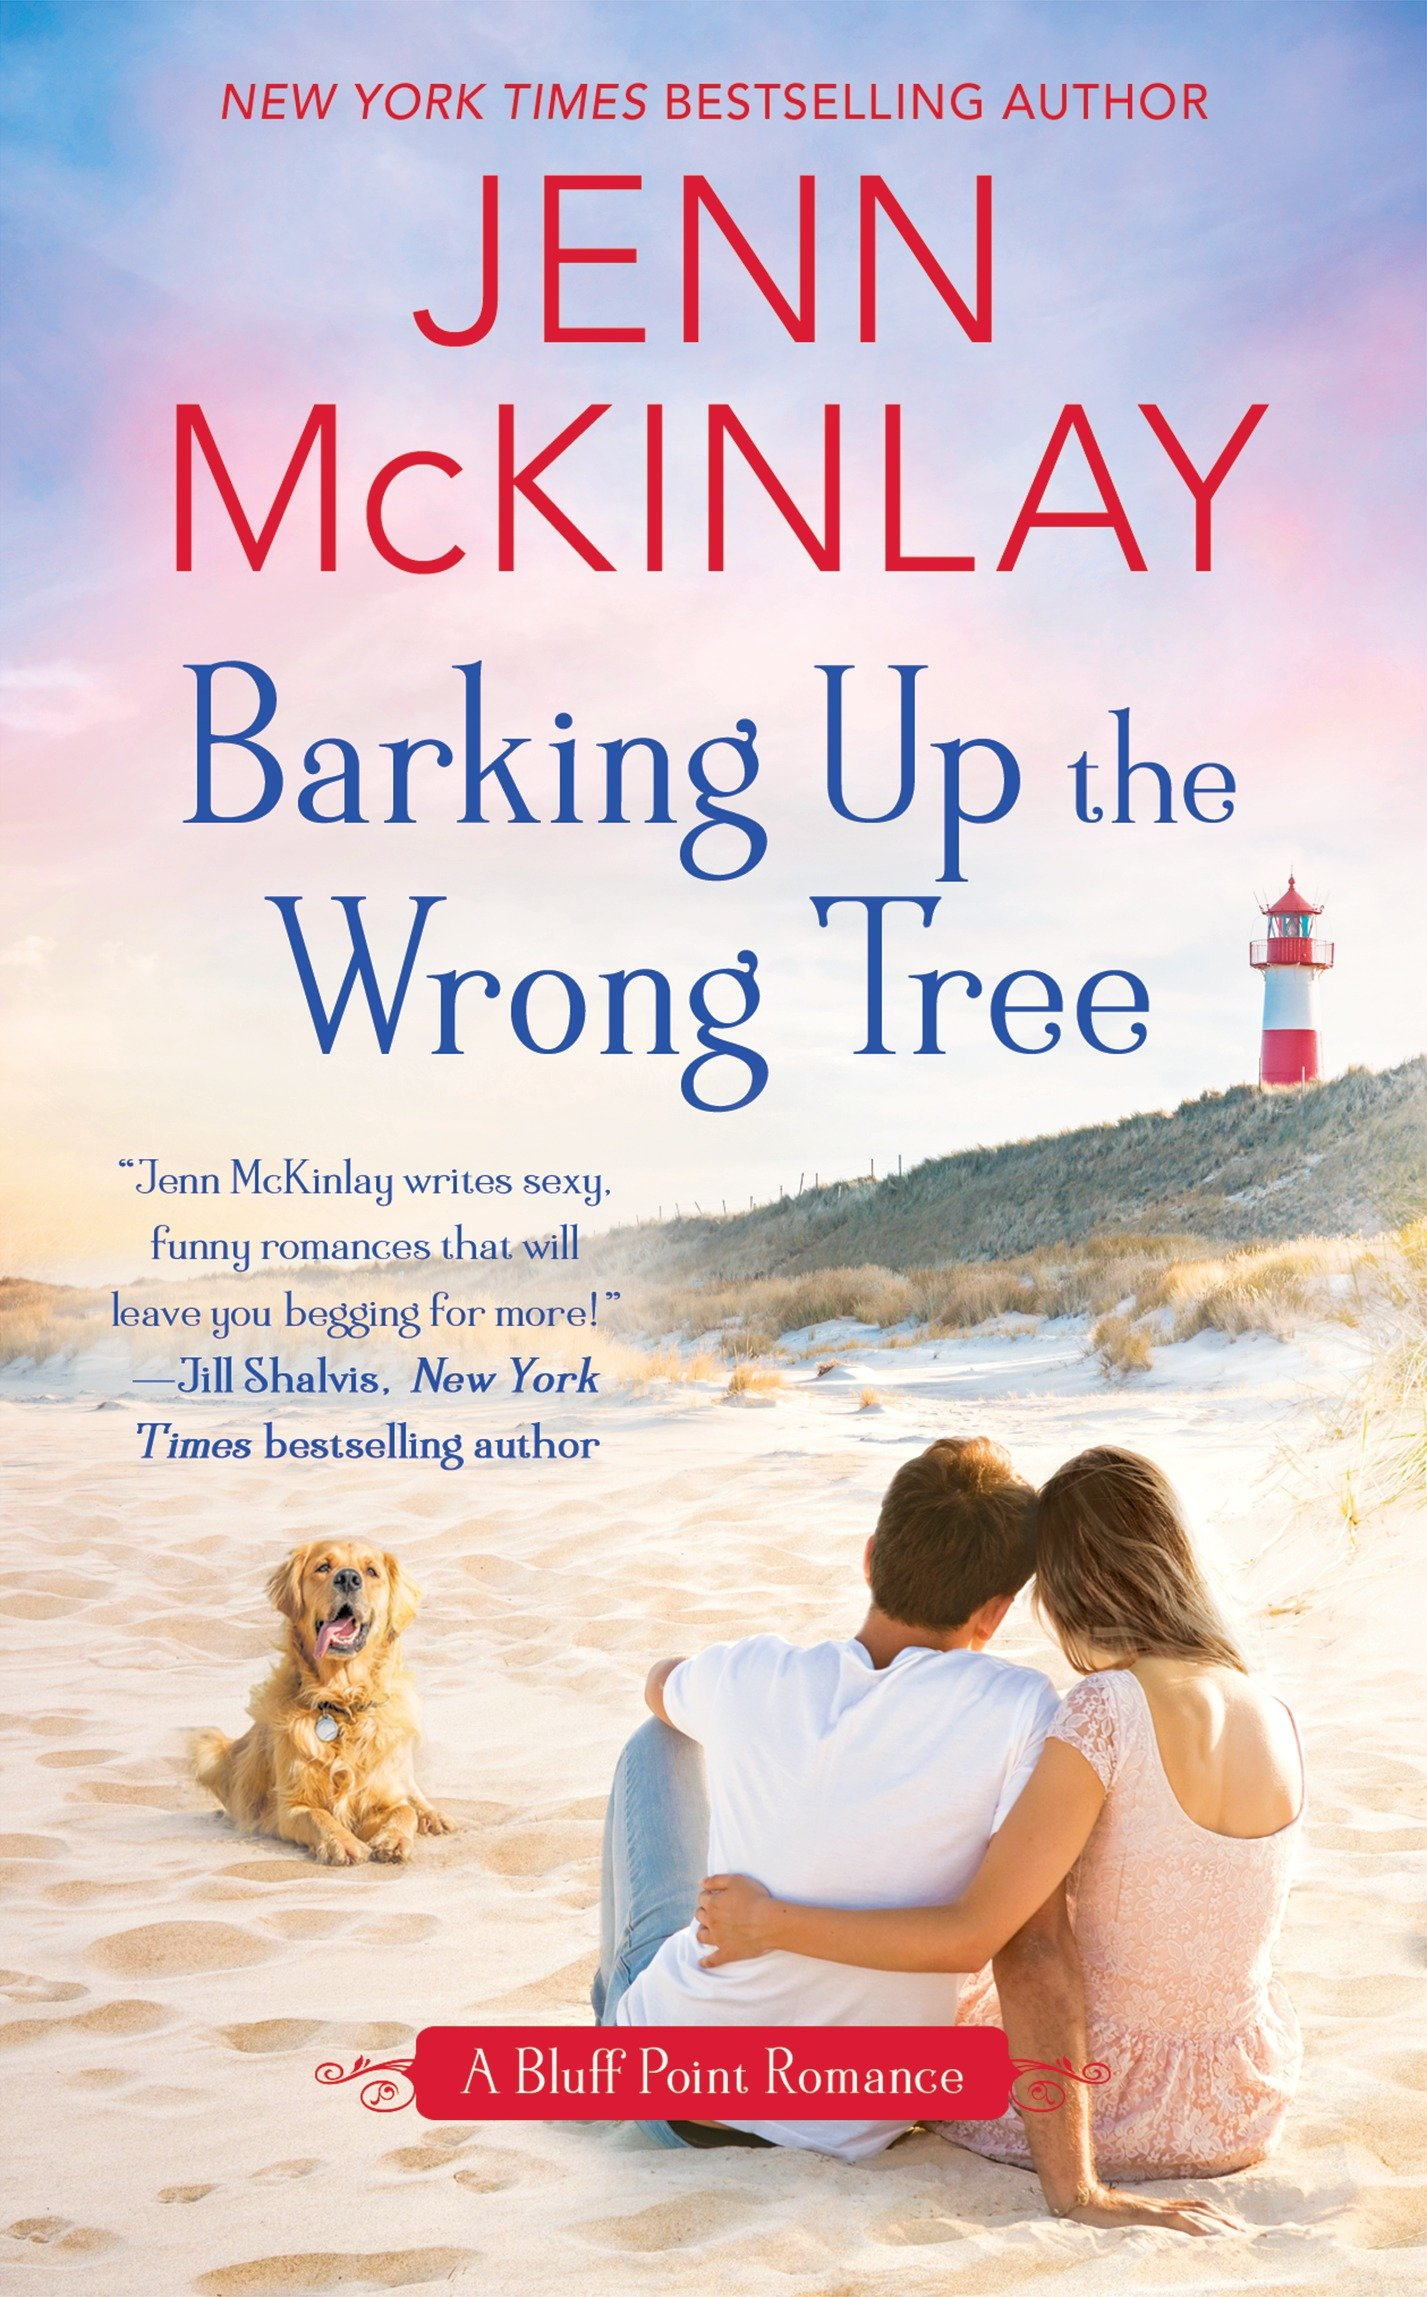 Barking up the wrong tree cover image